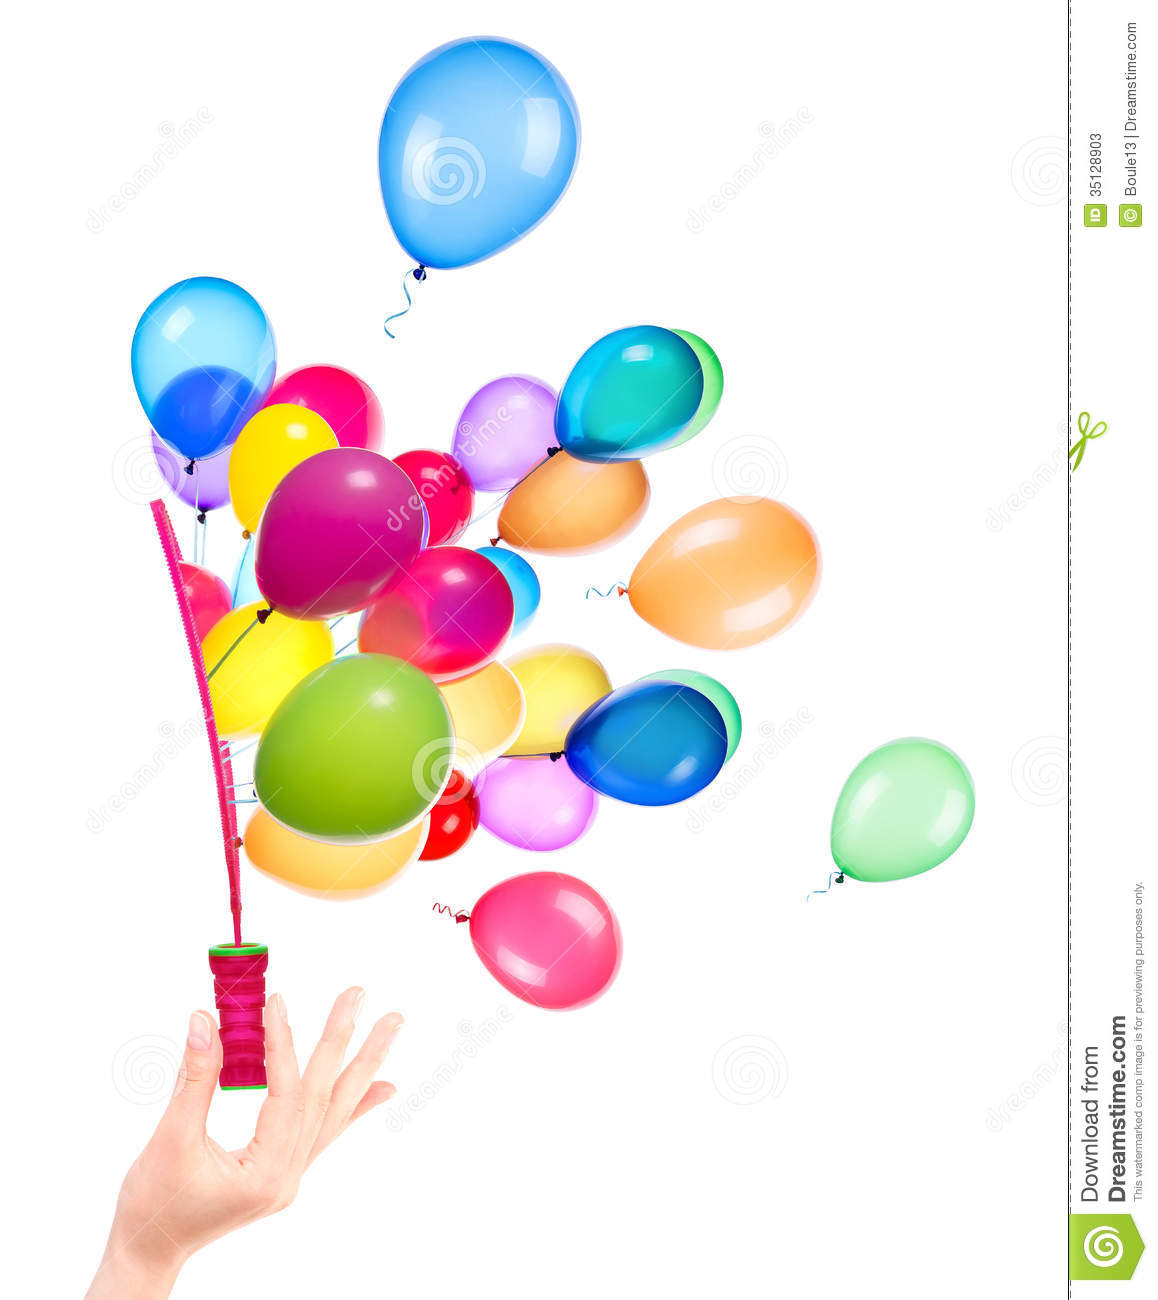 Blowing Bubbles Wand Clip Art Bubble wand and flying